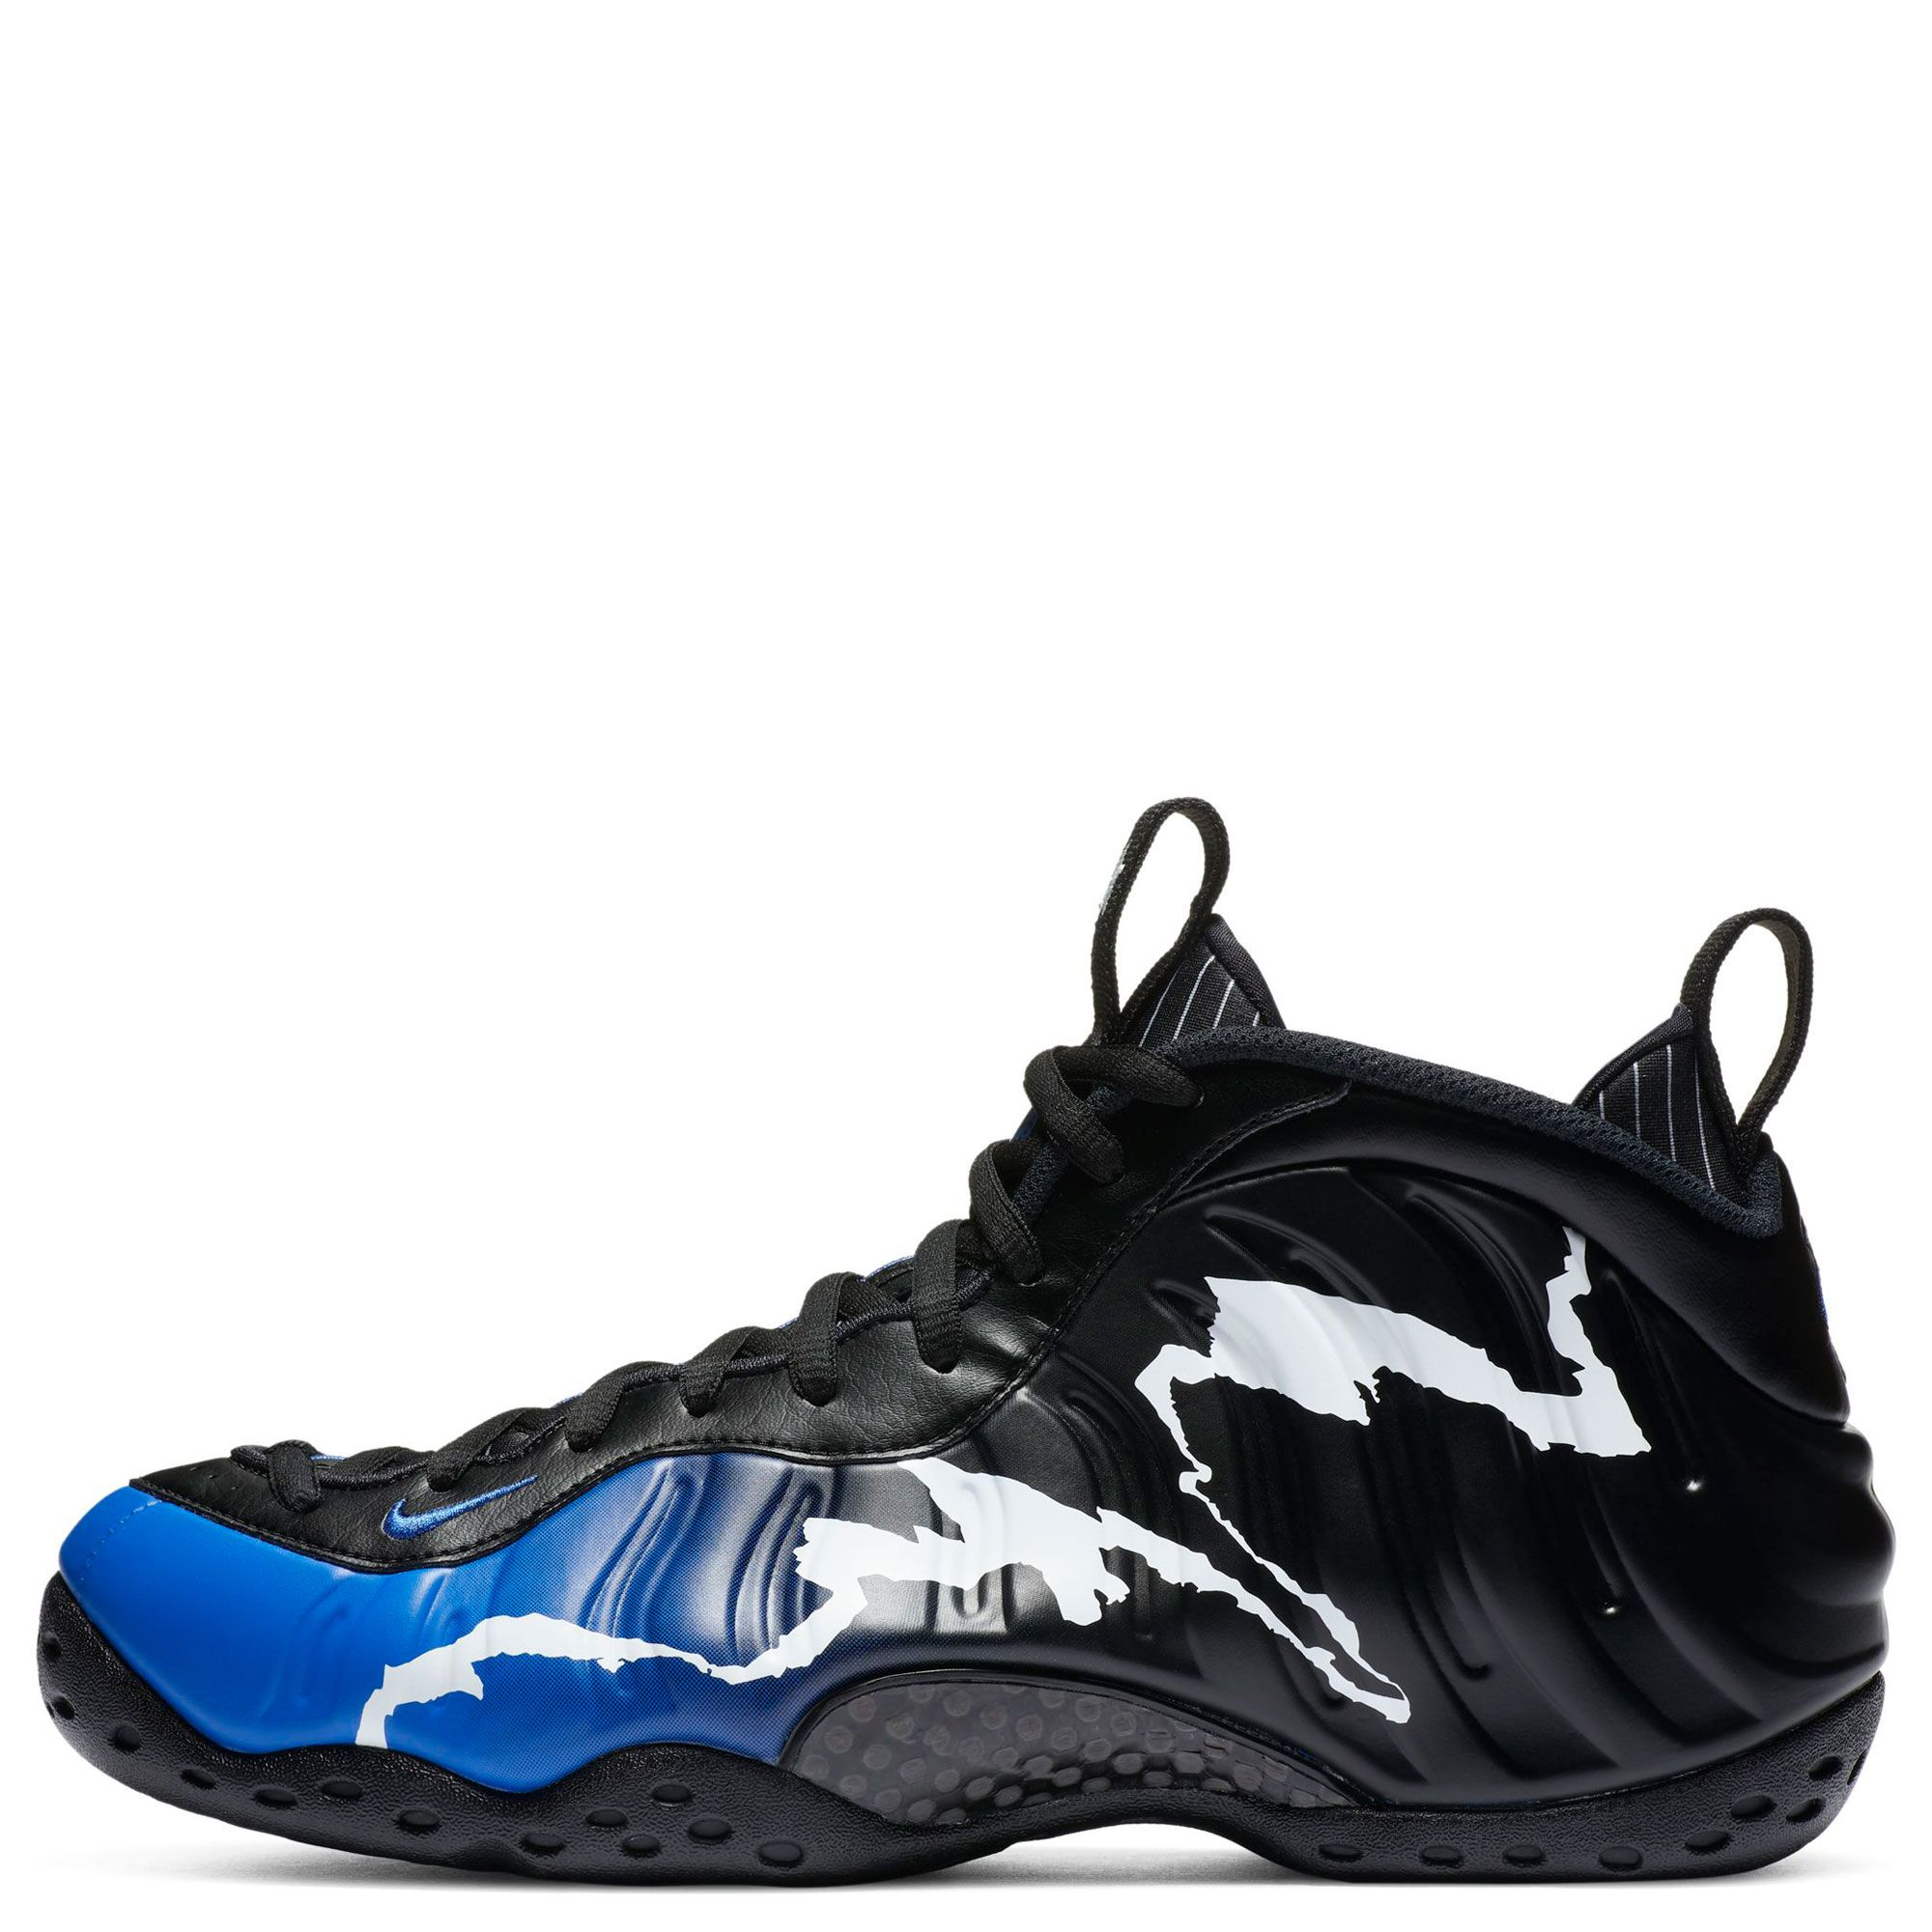 NIKE AIR FOAMPOSITE One Mens Basketball Shoes Mens ...